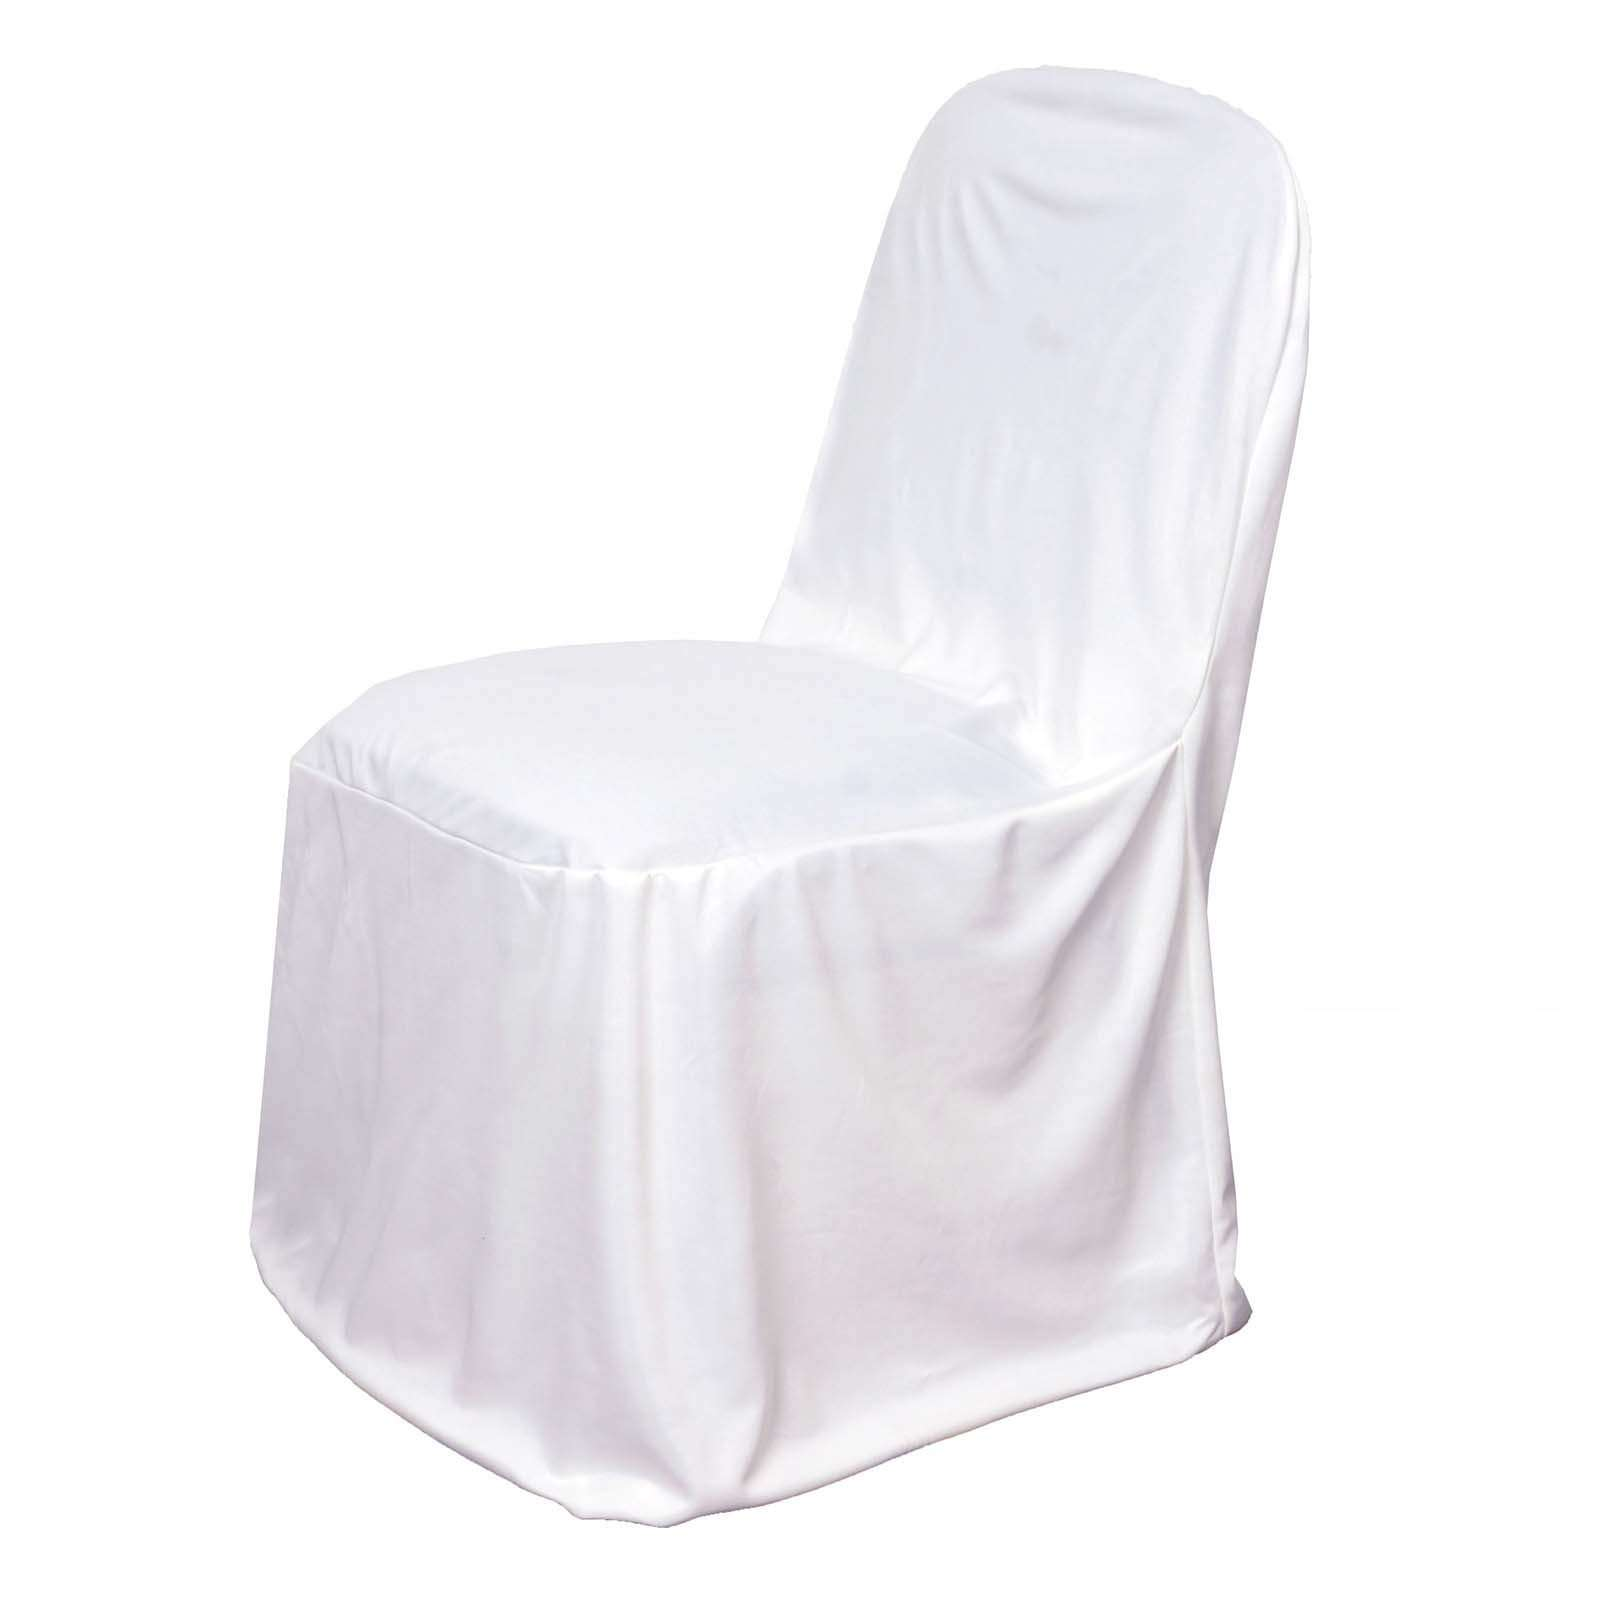 Magnificent White Stretch Scuba Chair Cover For Banquet Wedding Party Decorations Chaircoverfactory Creativecarmelina Interior Chair Design Creativecarmelinacom